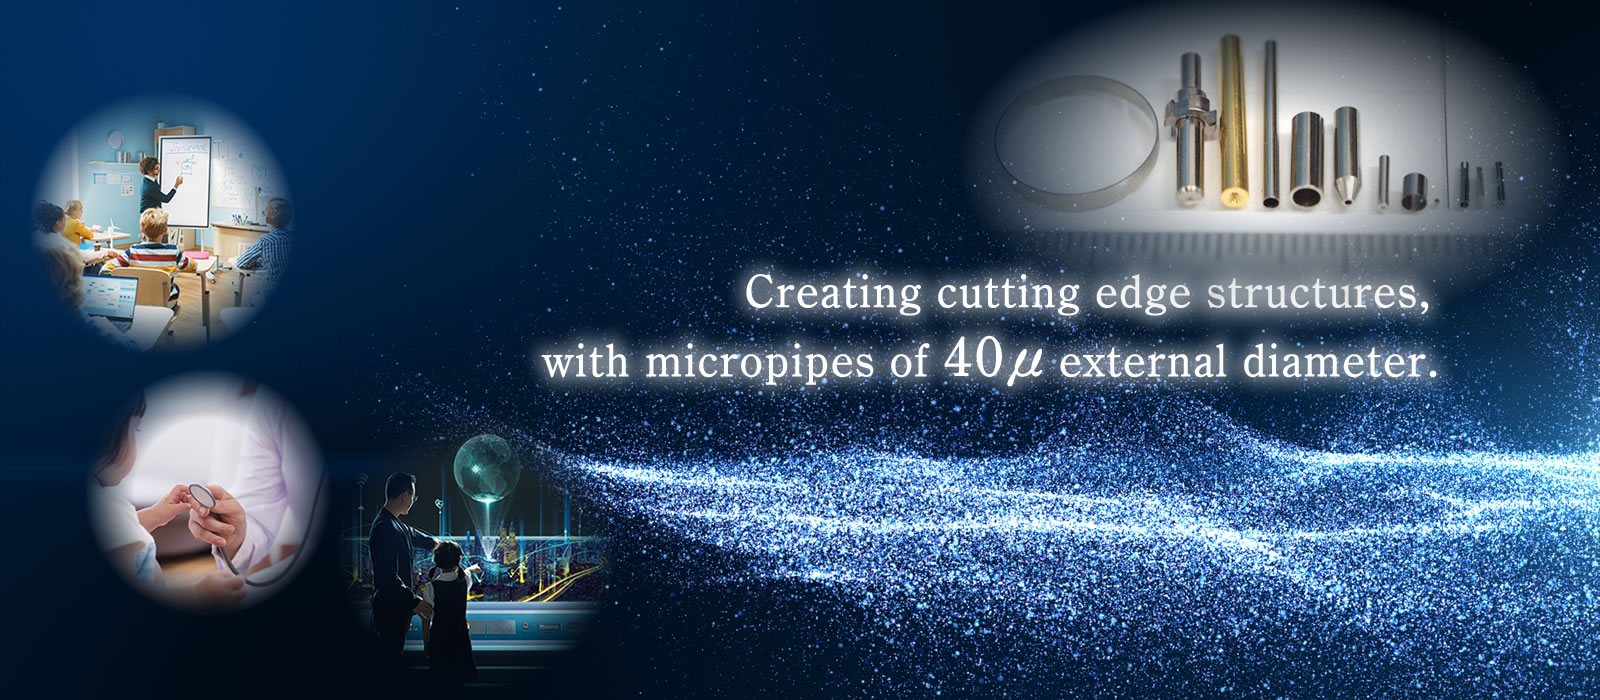 Creating cutting edge structures, with micropipes of 40 μ external diameter.